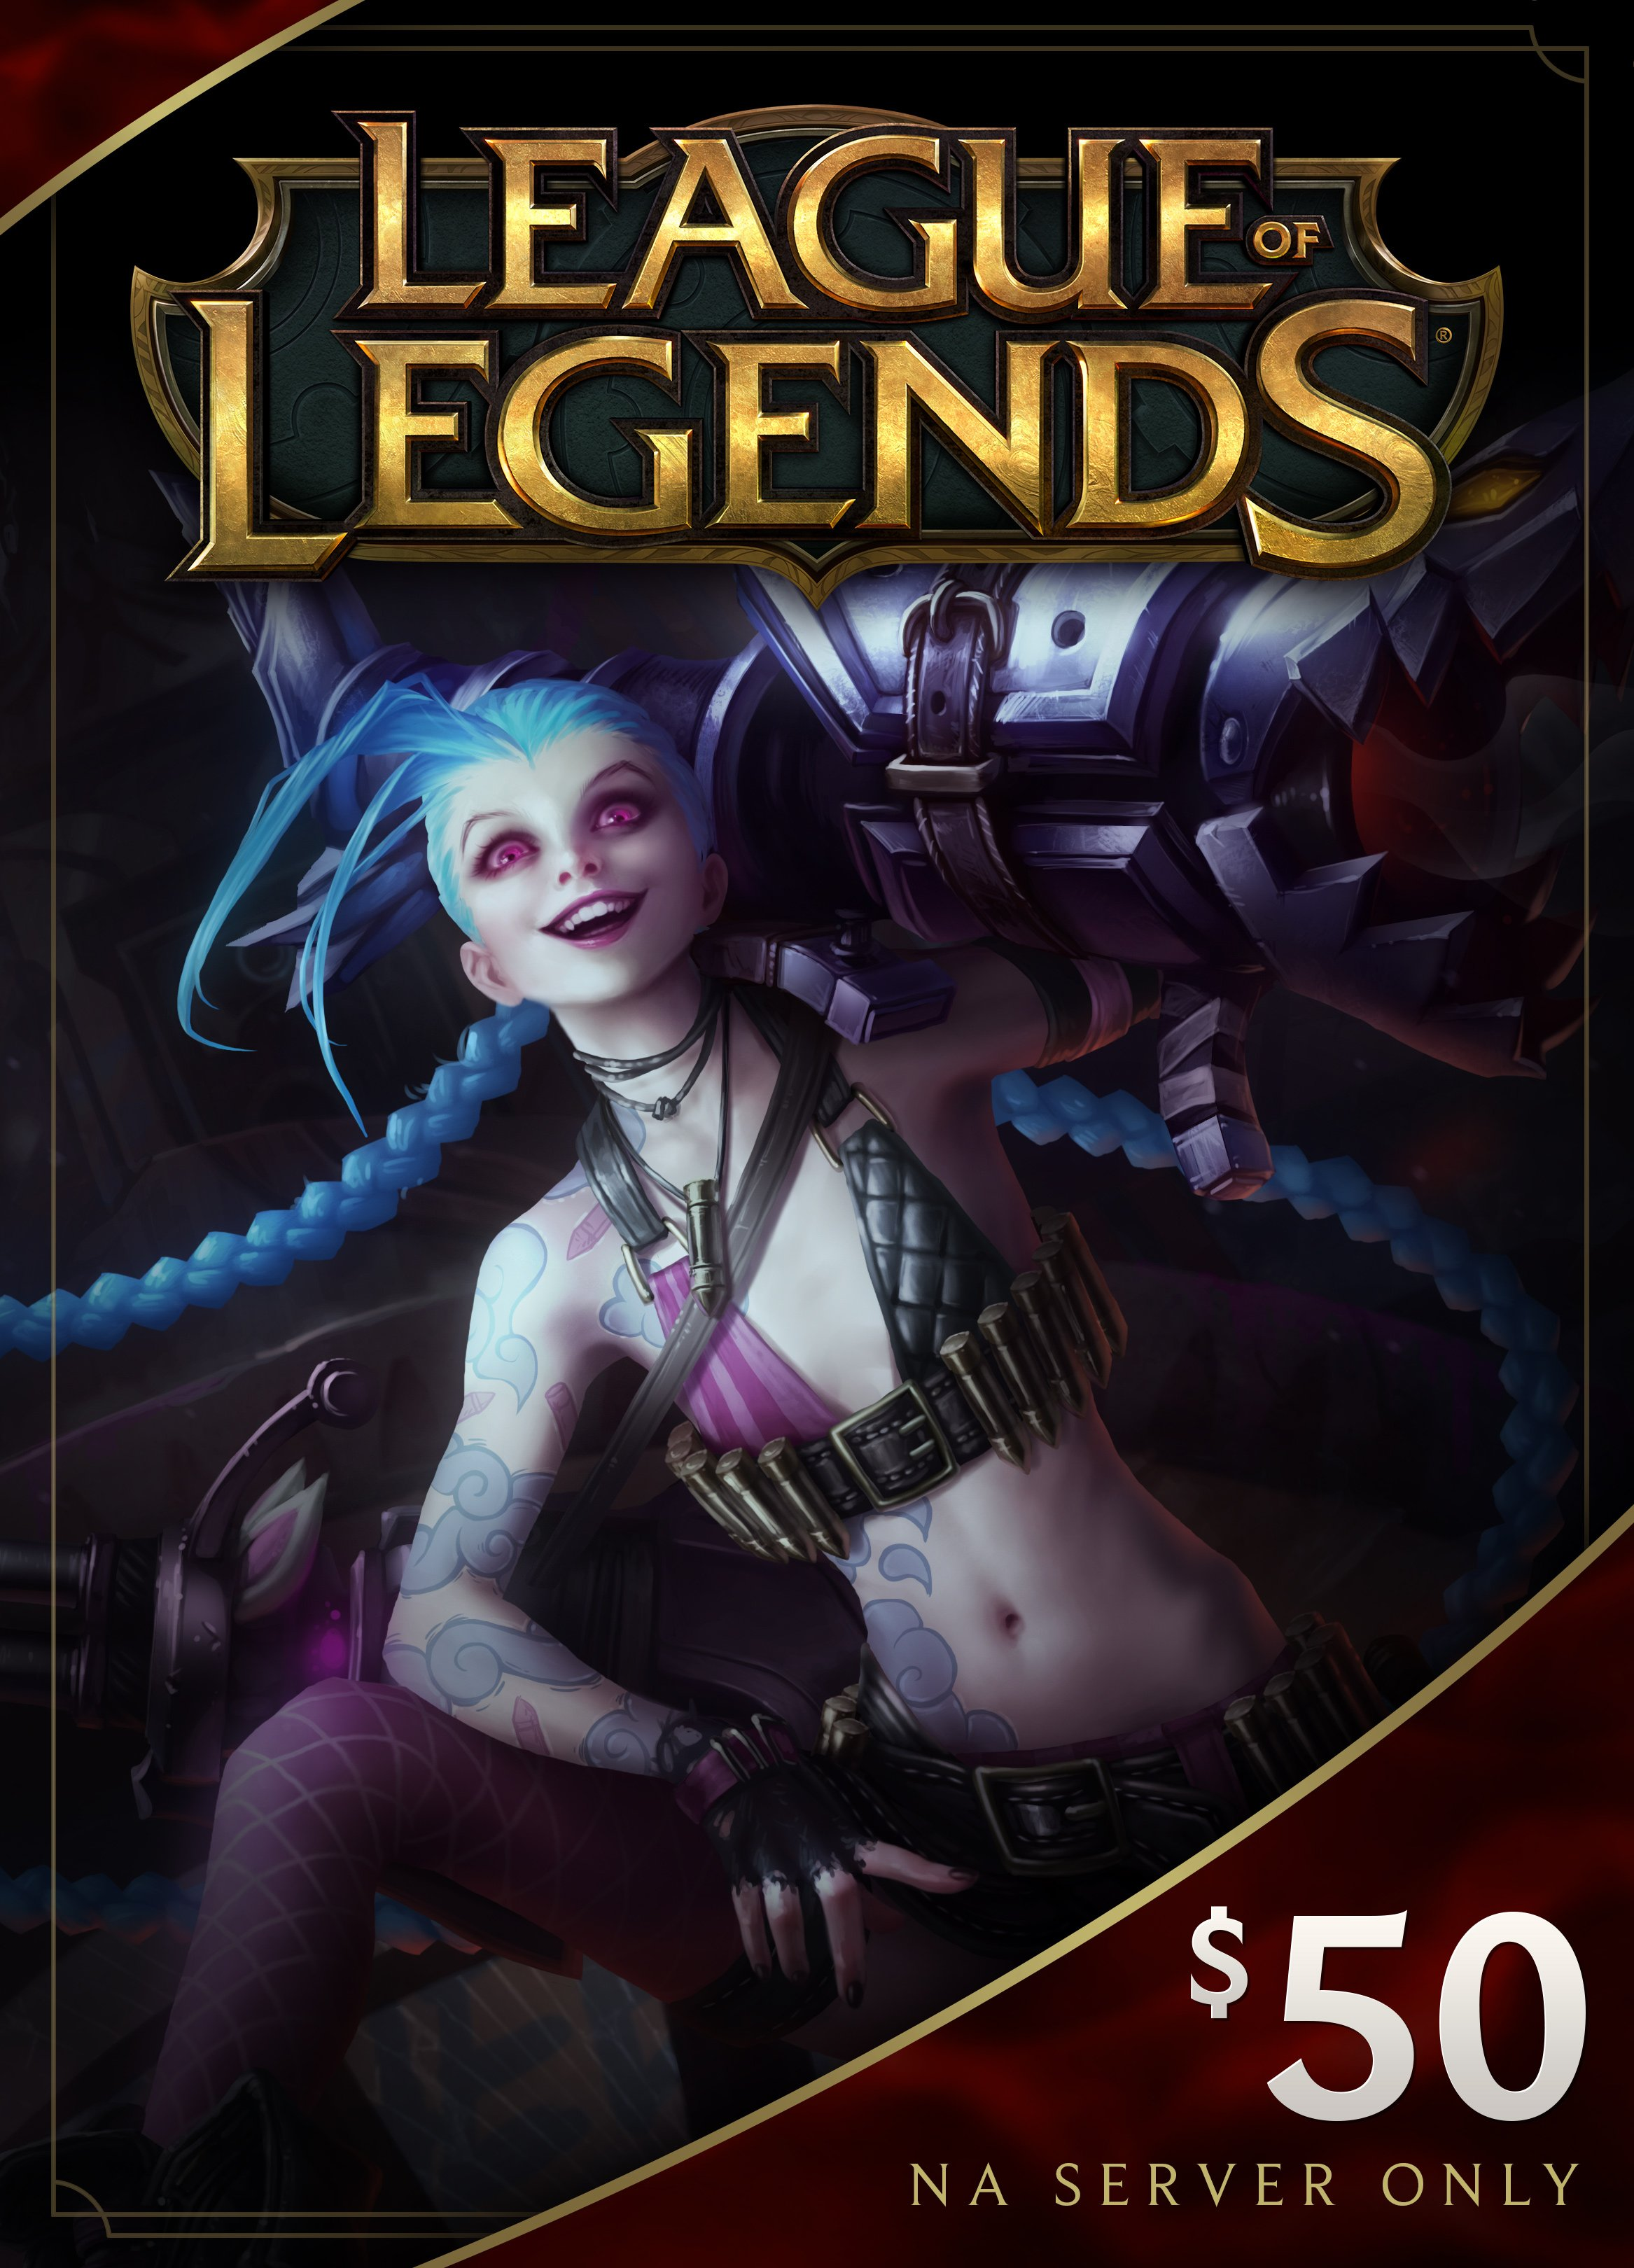 League of Legends $50 Gift Card  7200 Riot Points - NA Server Only [Online Game Code]